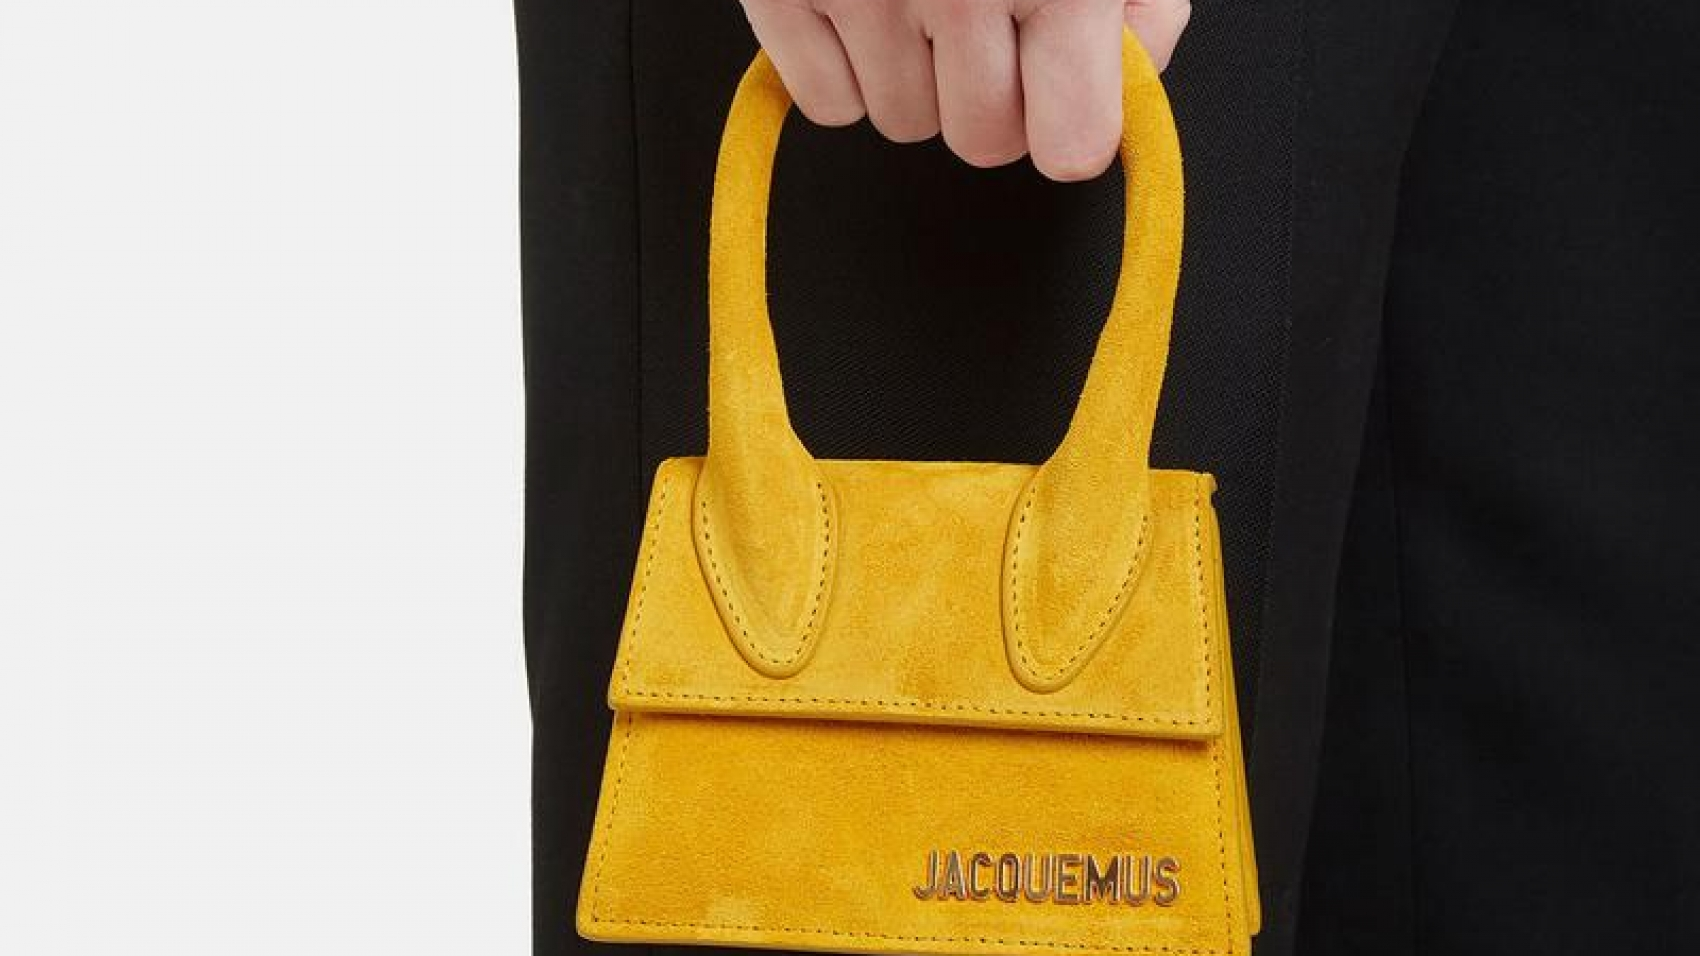 https___hypebeast.com_wp-content_blogs.dir_6_files_2020_01_Jacquemus-Instagram-Filters-What-Bag-Are-You-01